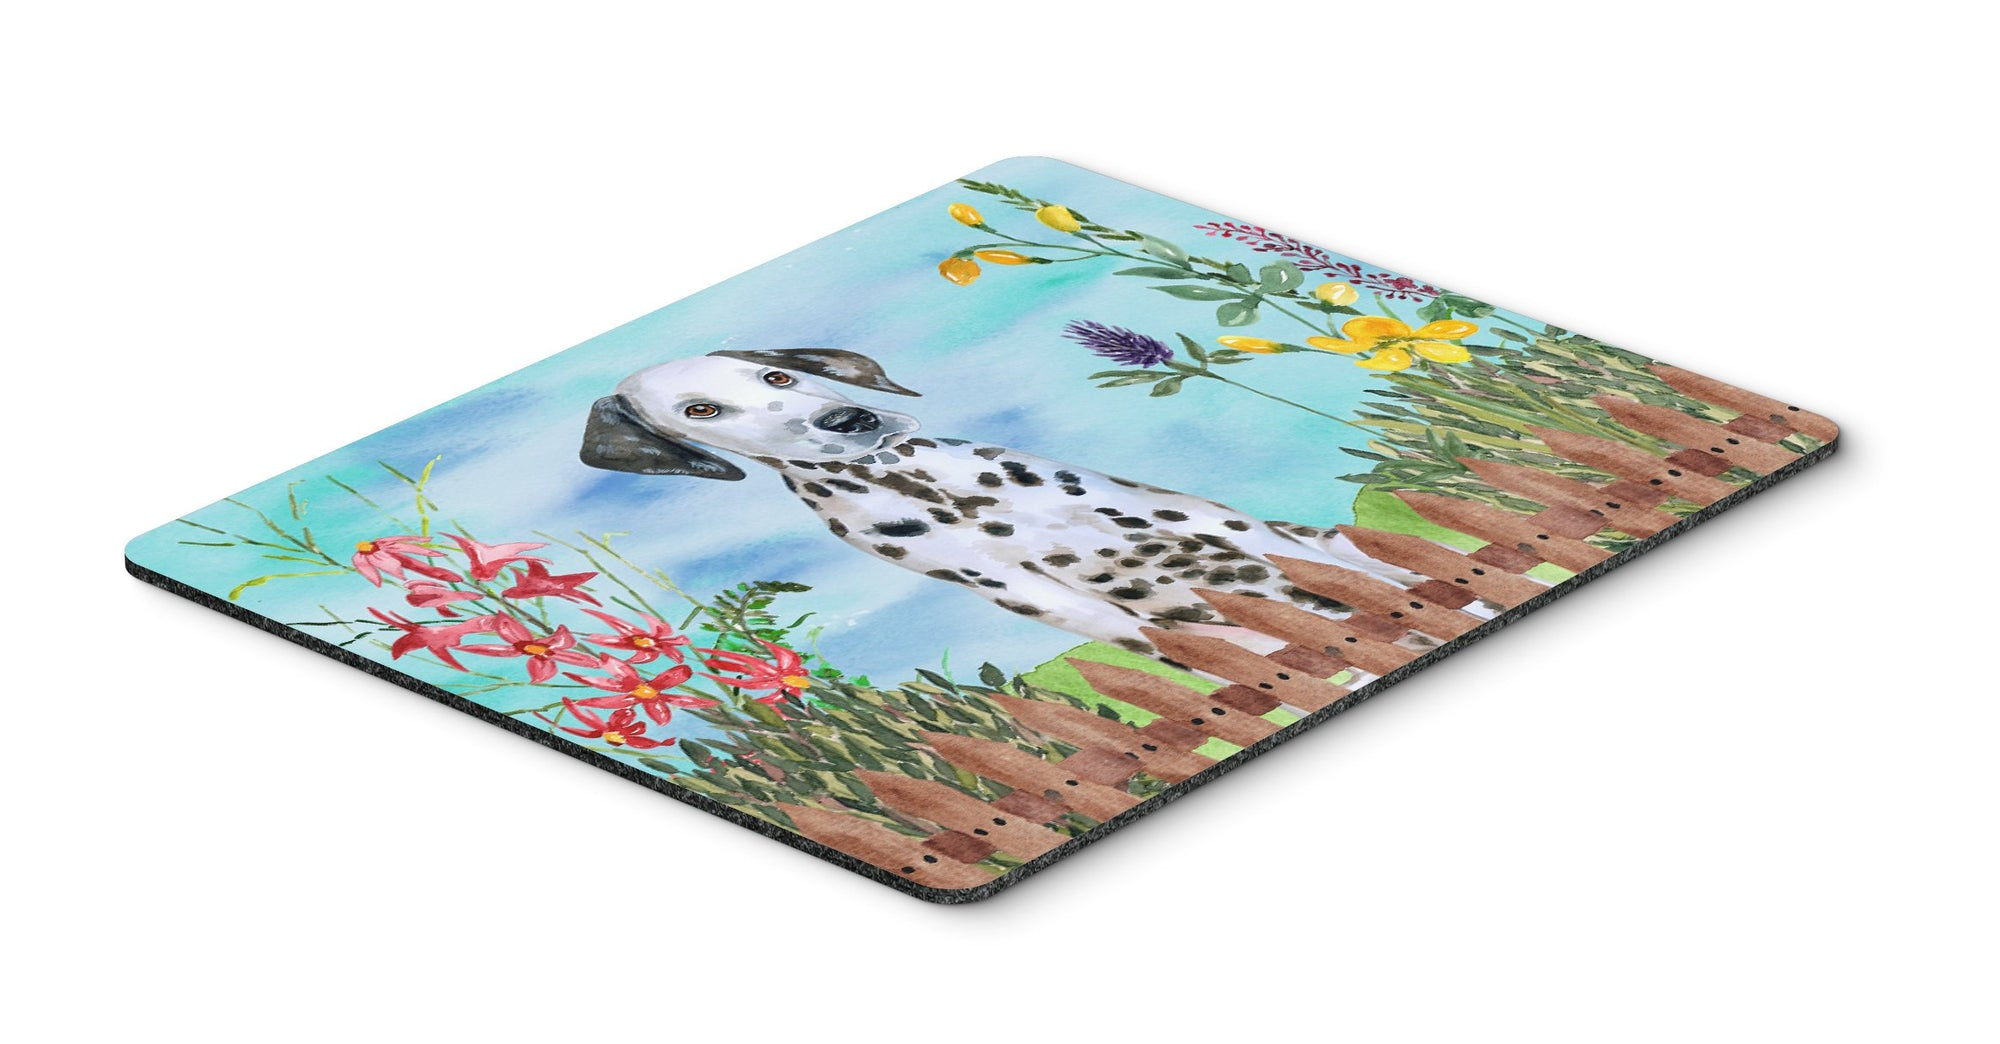 Dalmatian Puppy Spring Mouse Pad, Hot Pad or Trivet CK1270MP by Caroline's Treasures